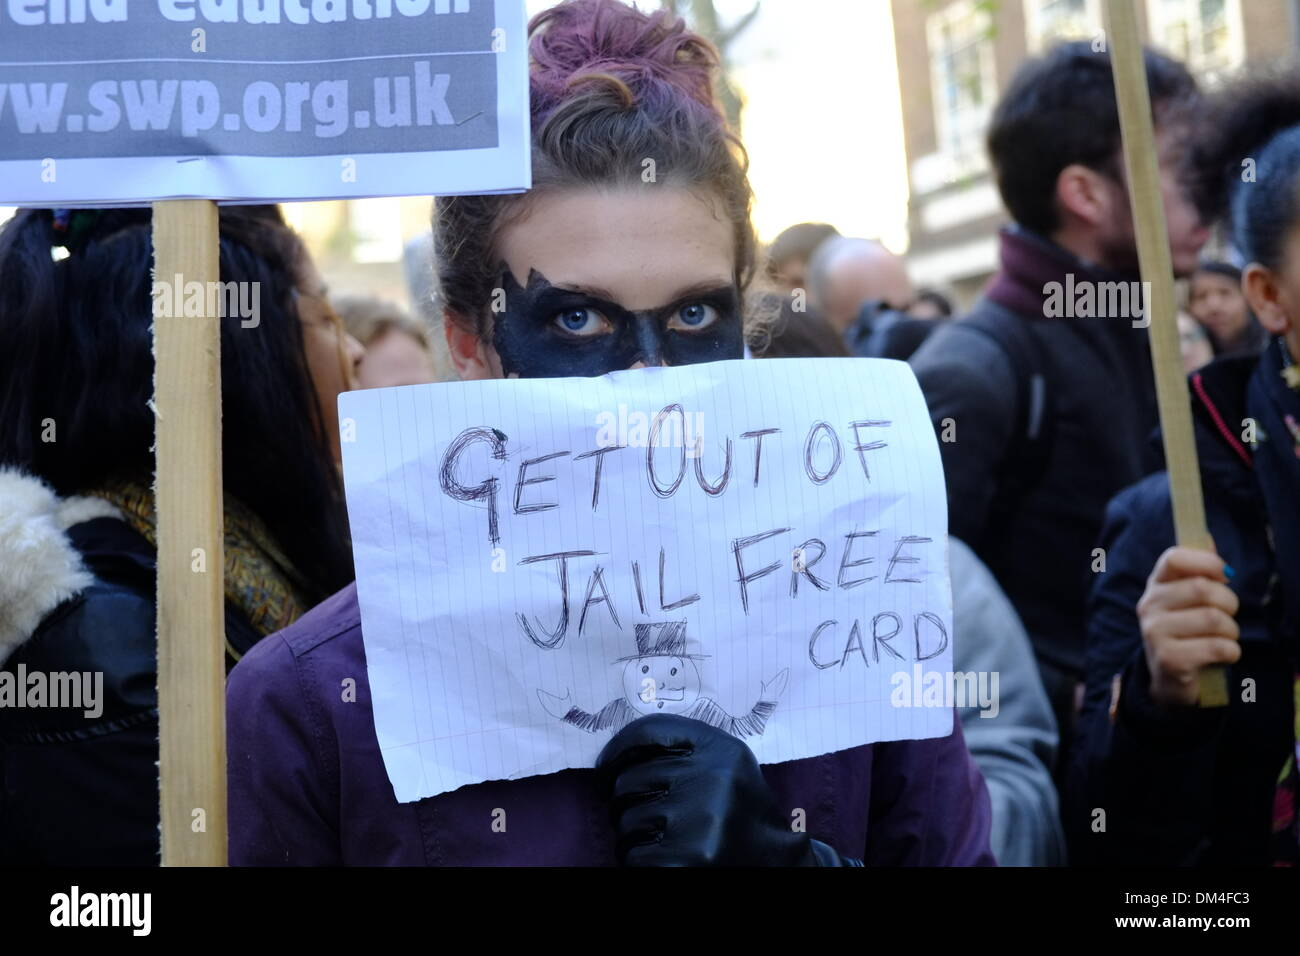 London, UK. 11th December 2013. Students in London protest at cuts and previous police violence. Starting with a - Stock Image